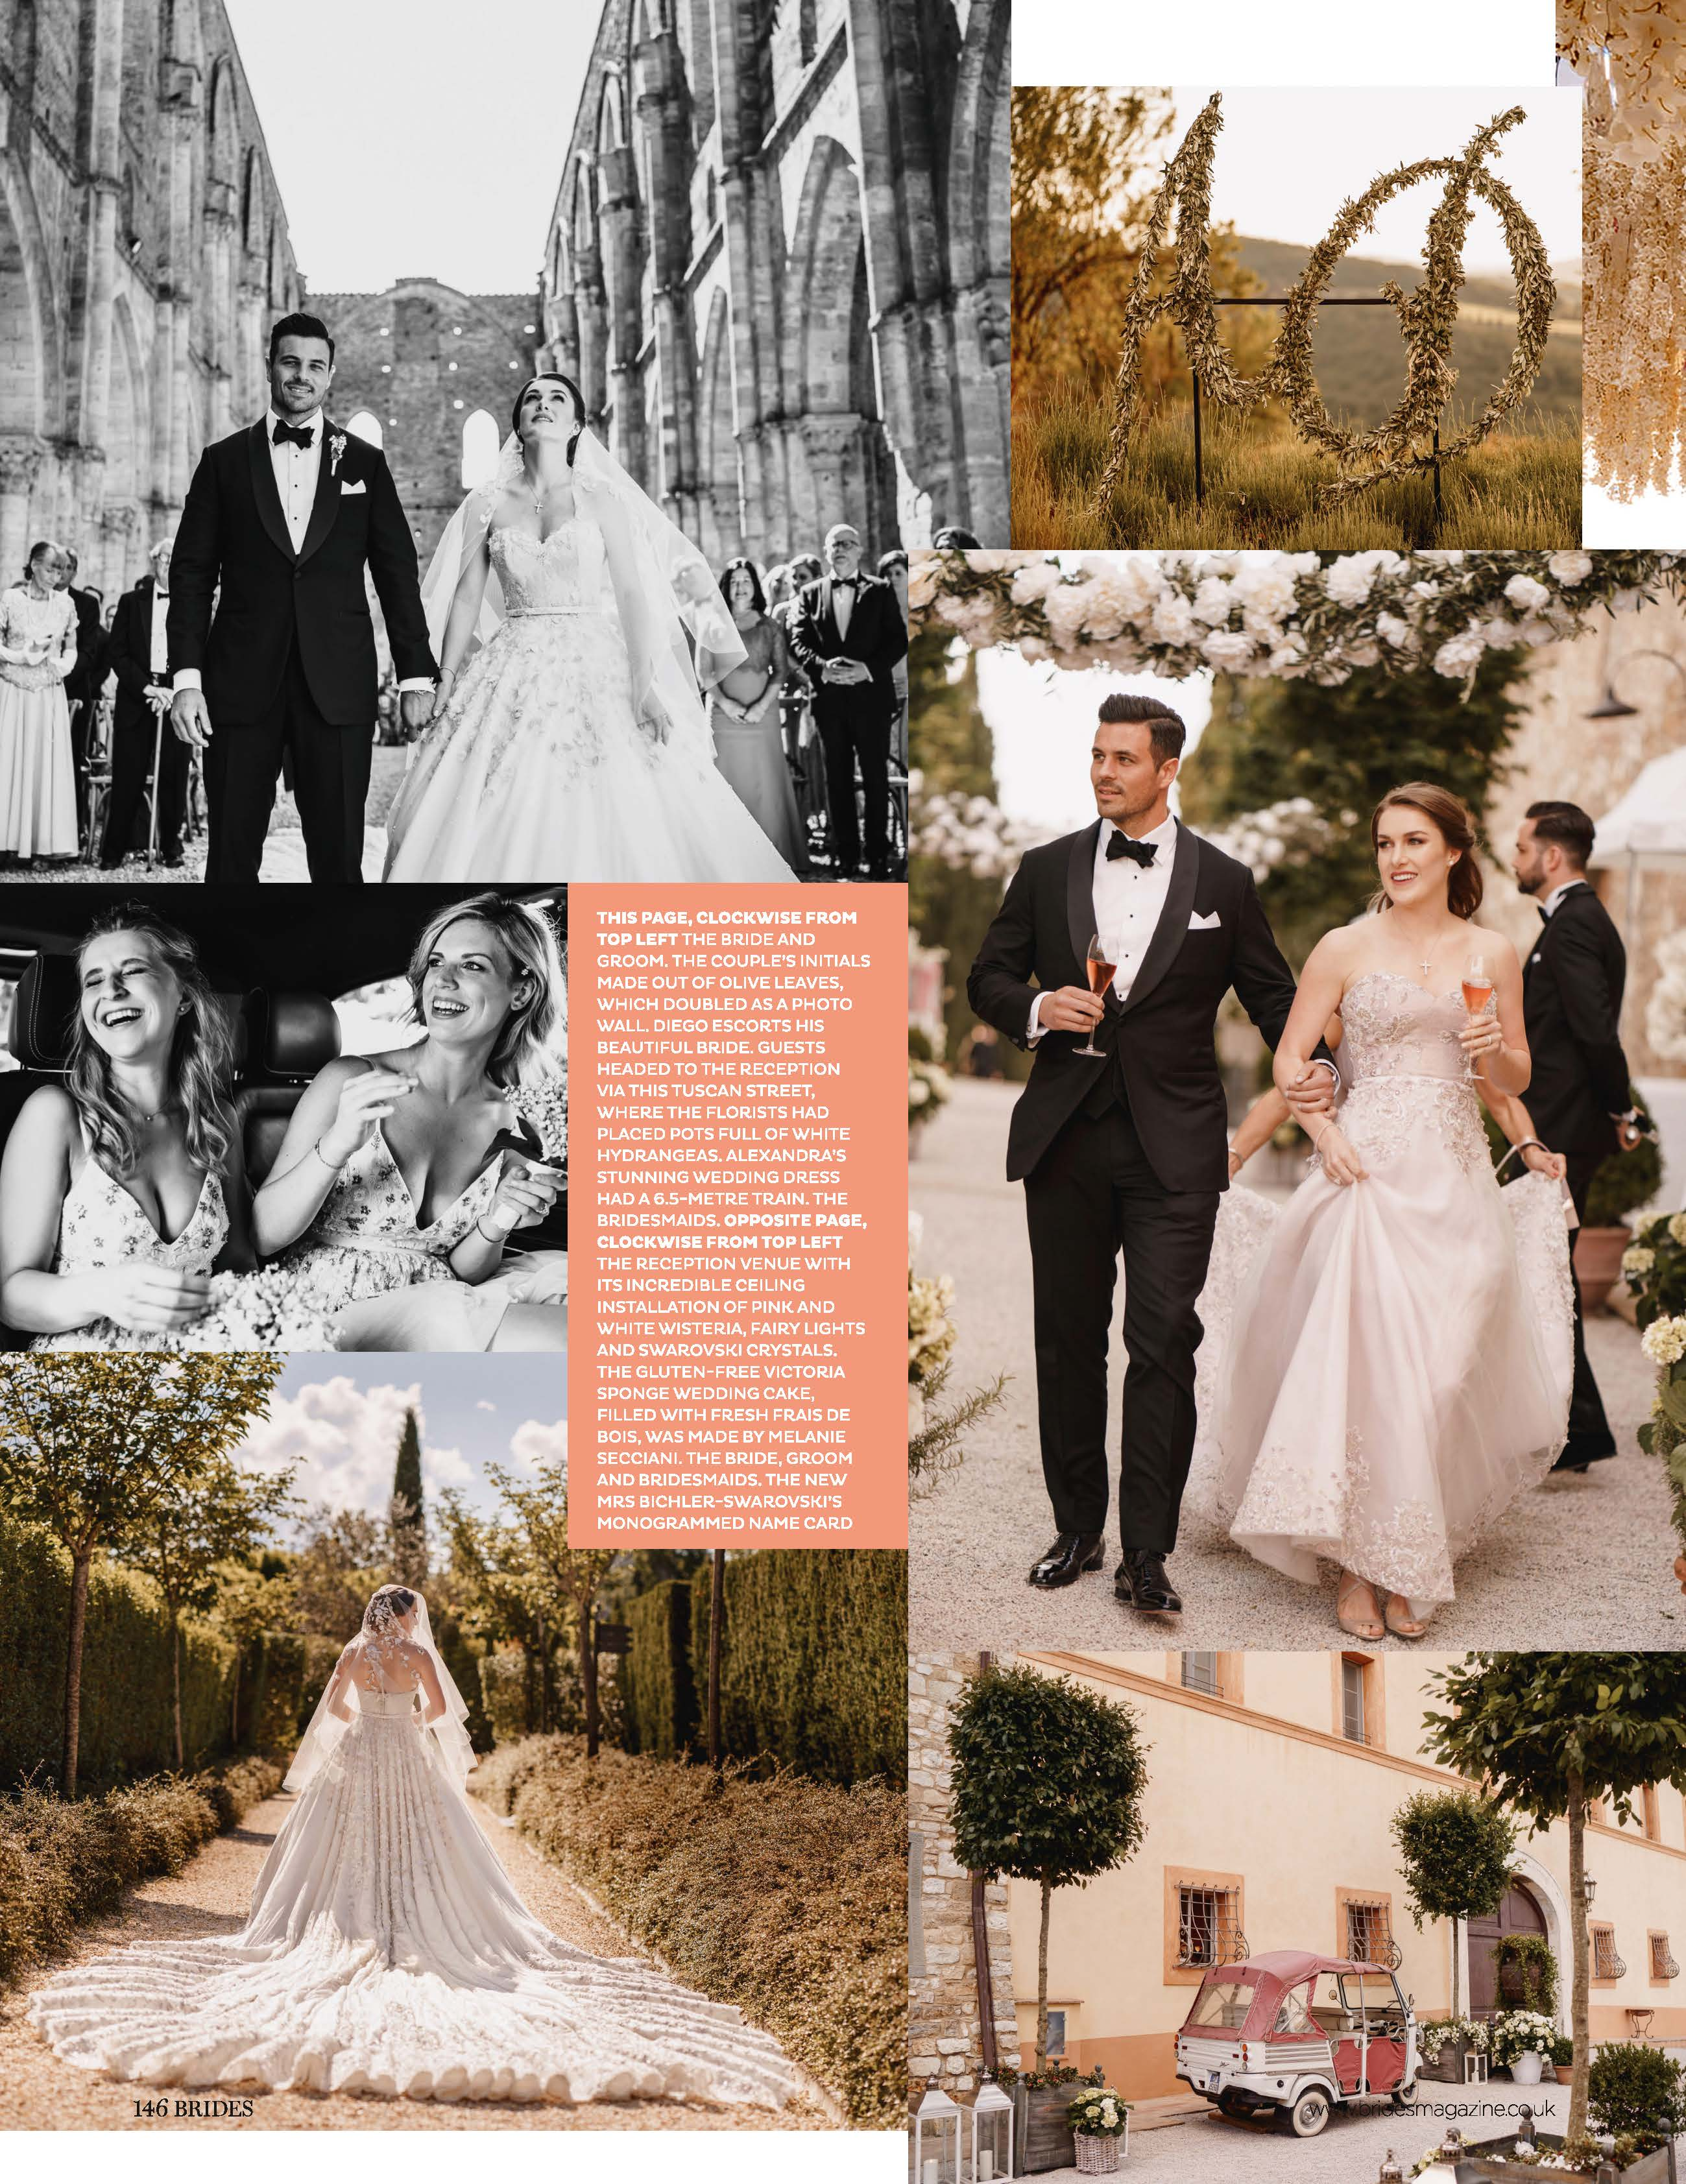 Brides magazine feature - luxury destination wedding photography by arj photography